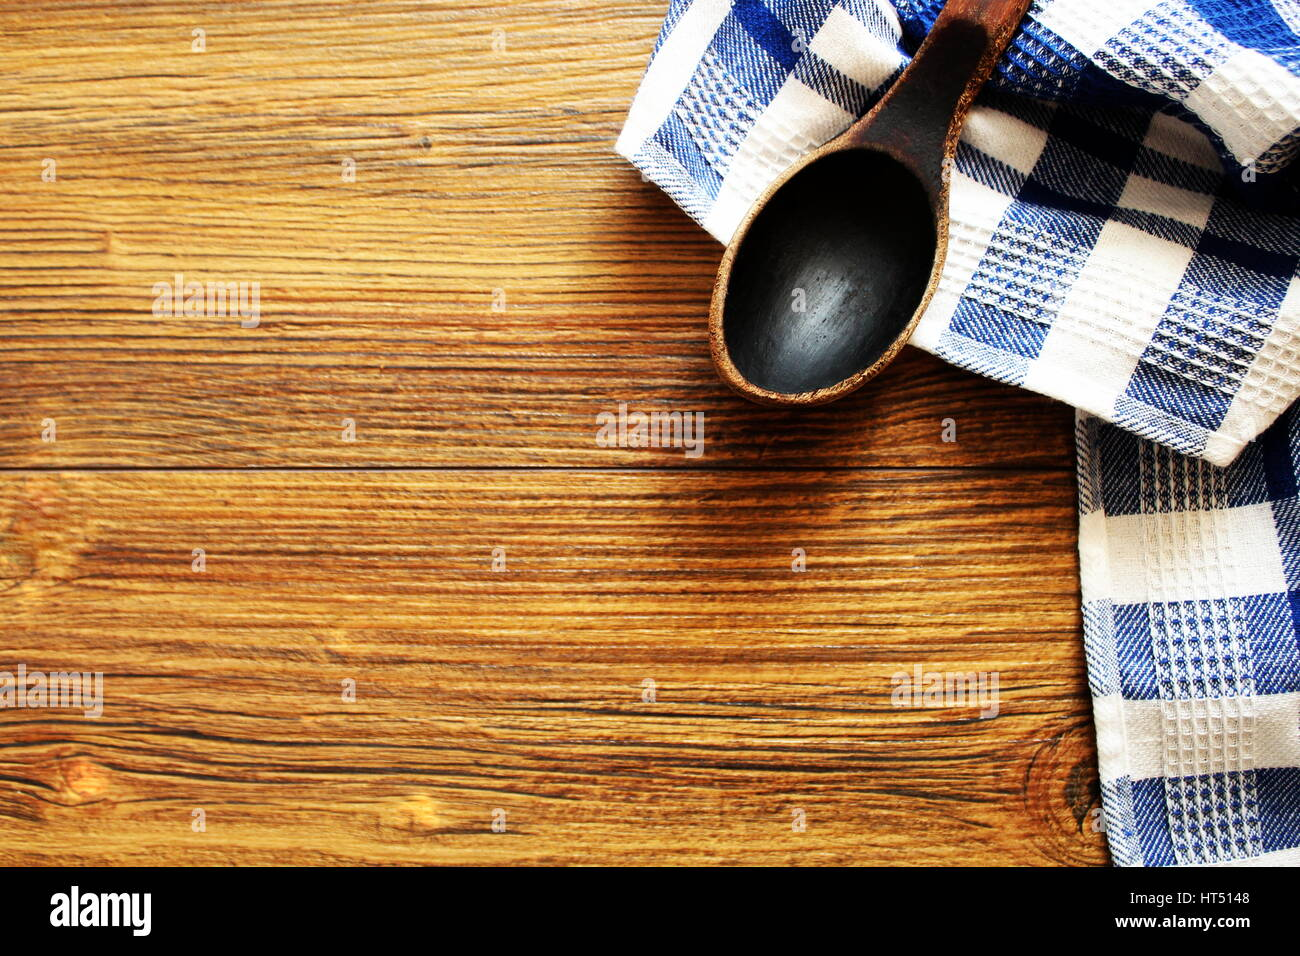 Wooden spoon on wood texture of dining table top view